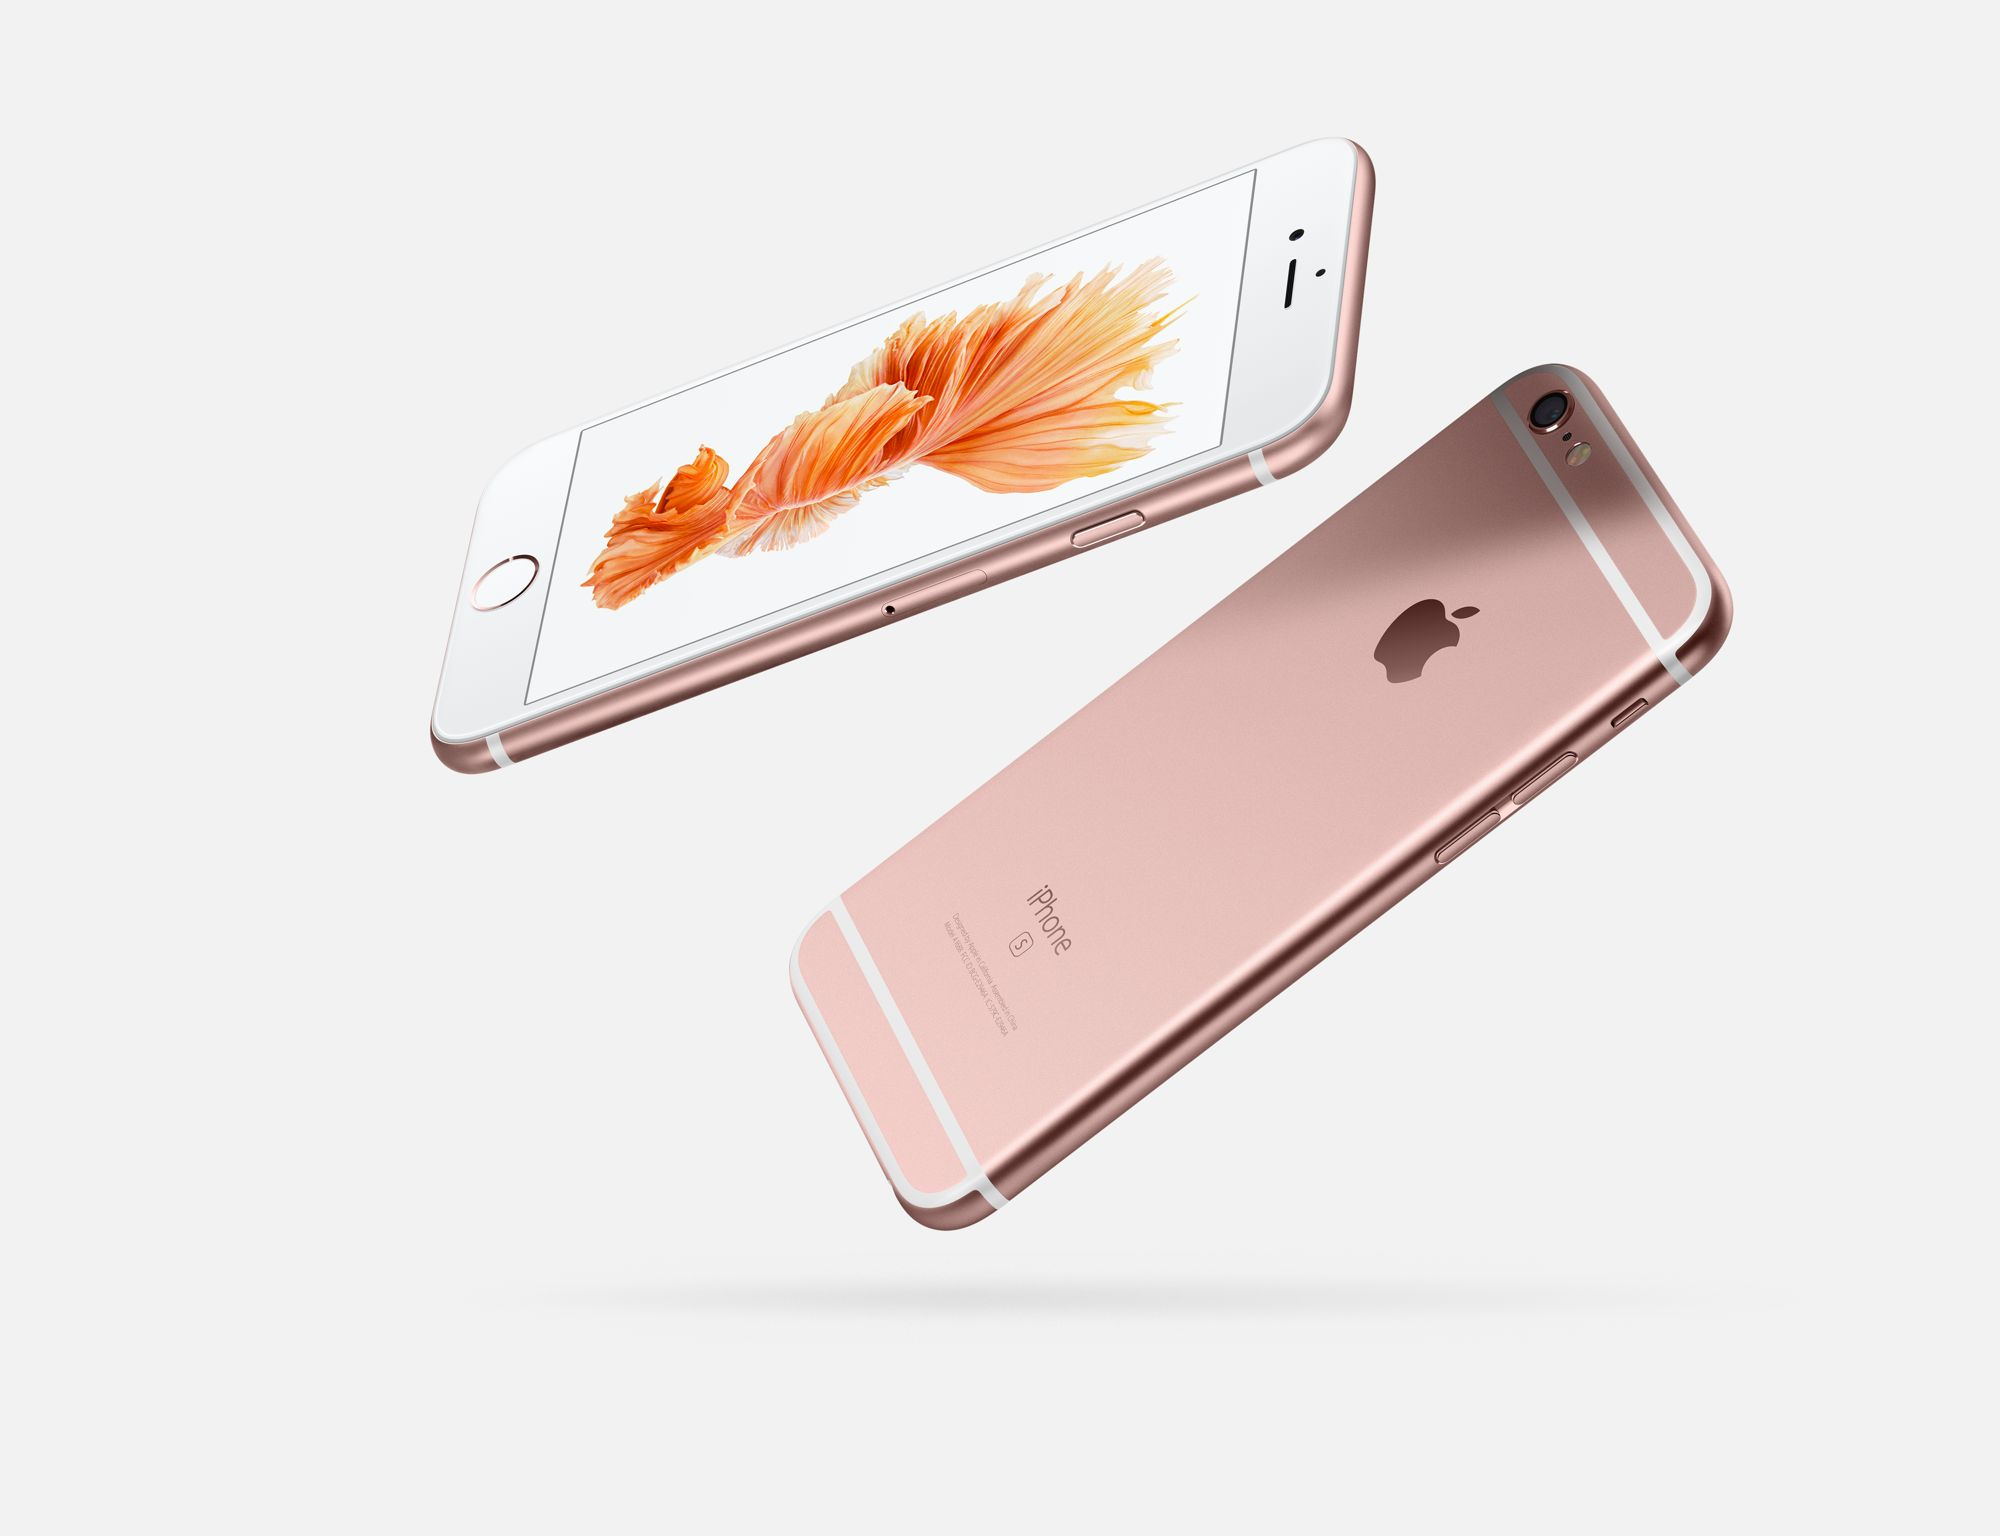 Brand new dicount apple iphone 6S 128gb rose gold unlocked for s